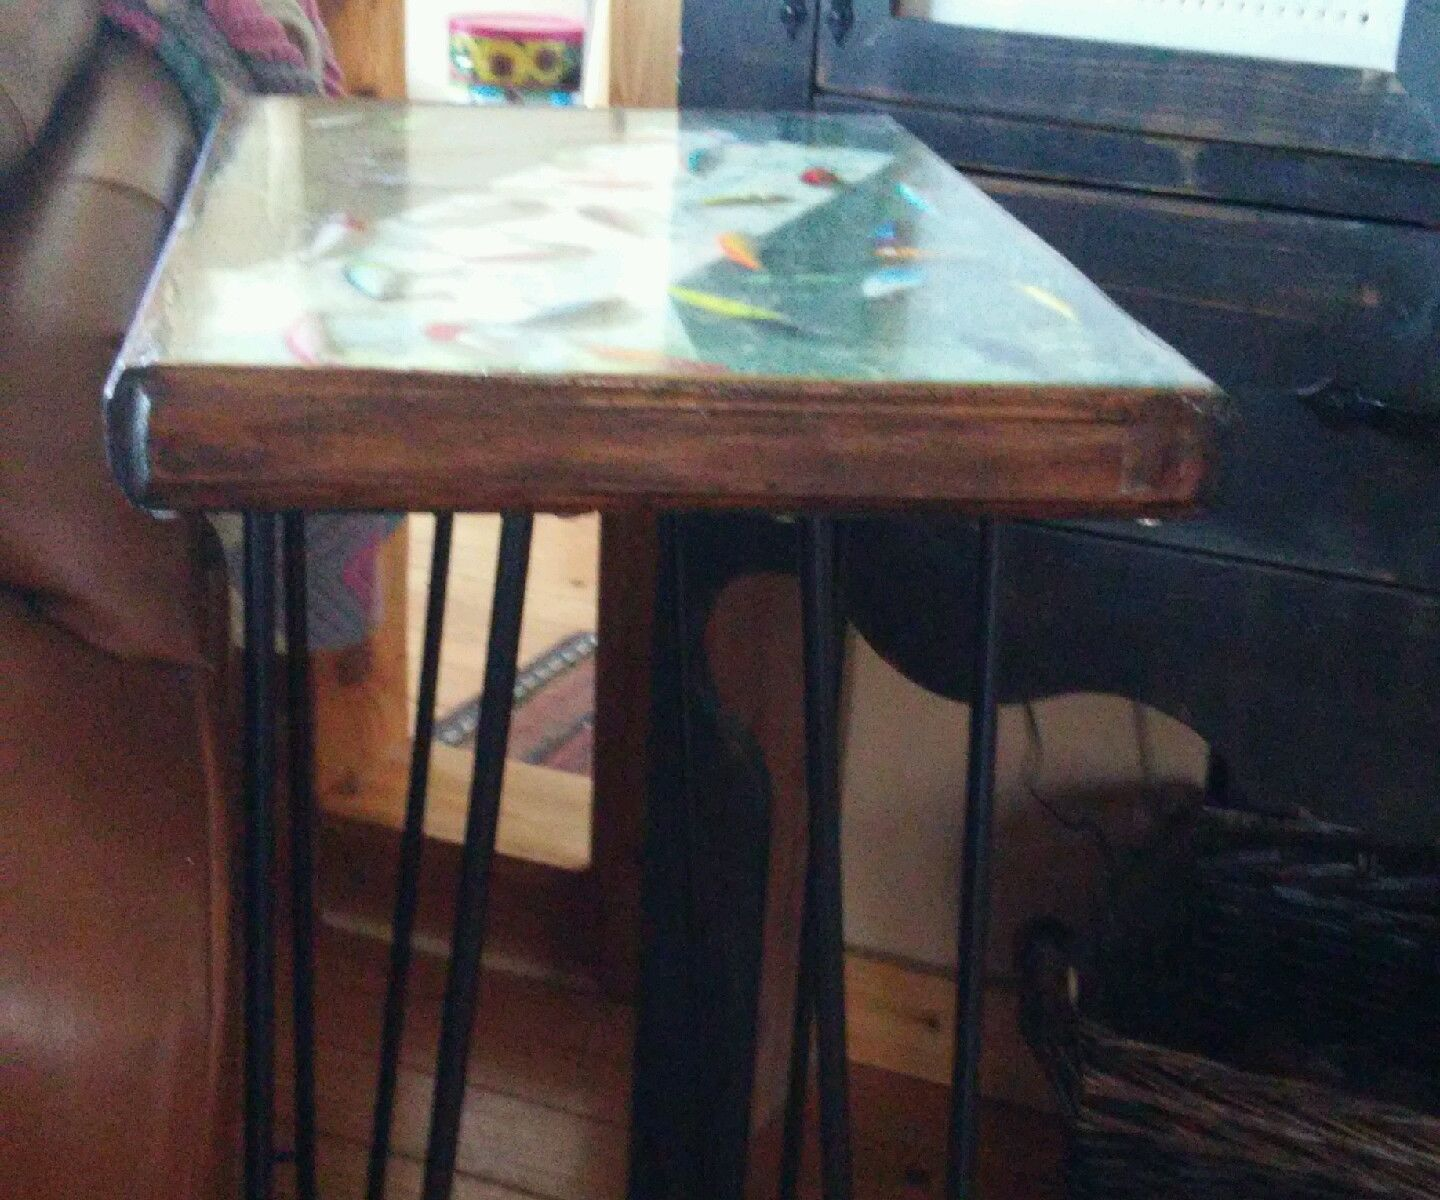 Fishing Lure Side Table: 7 Steps